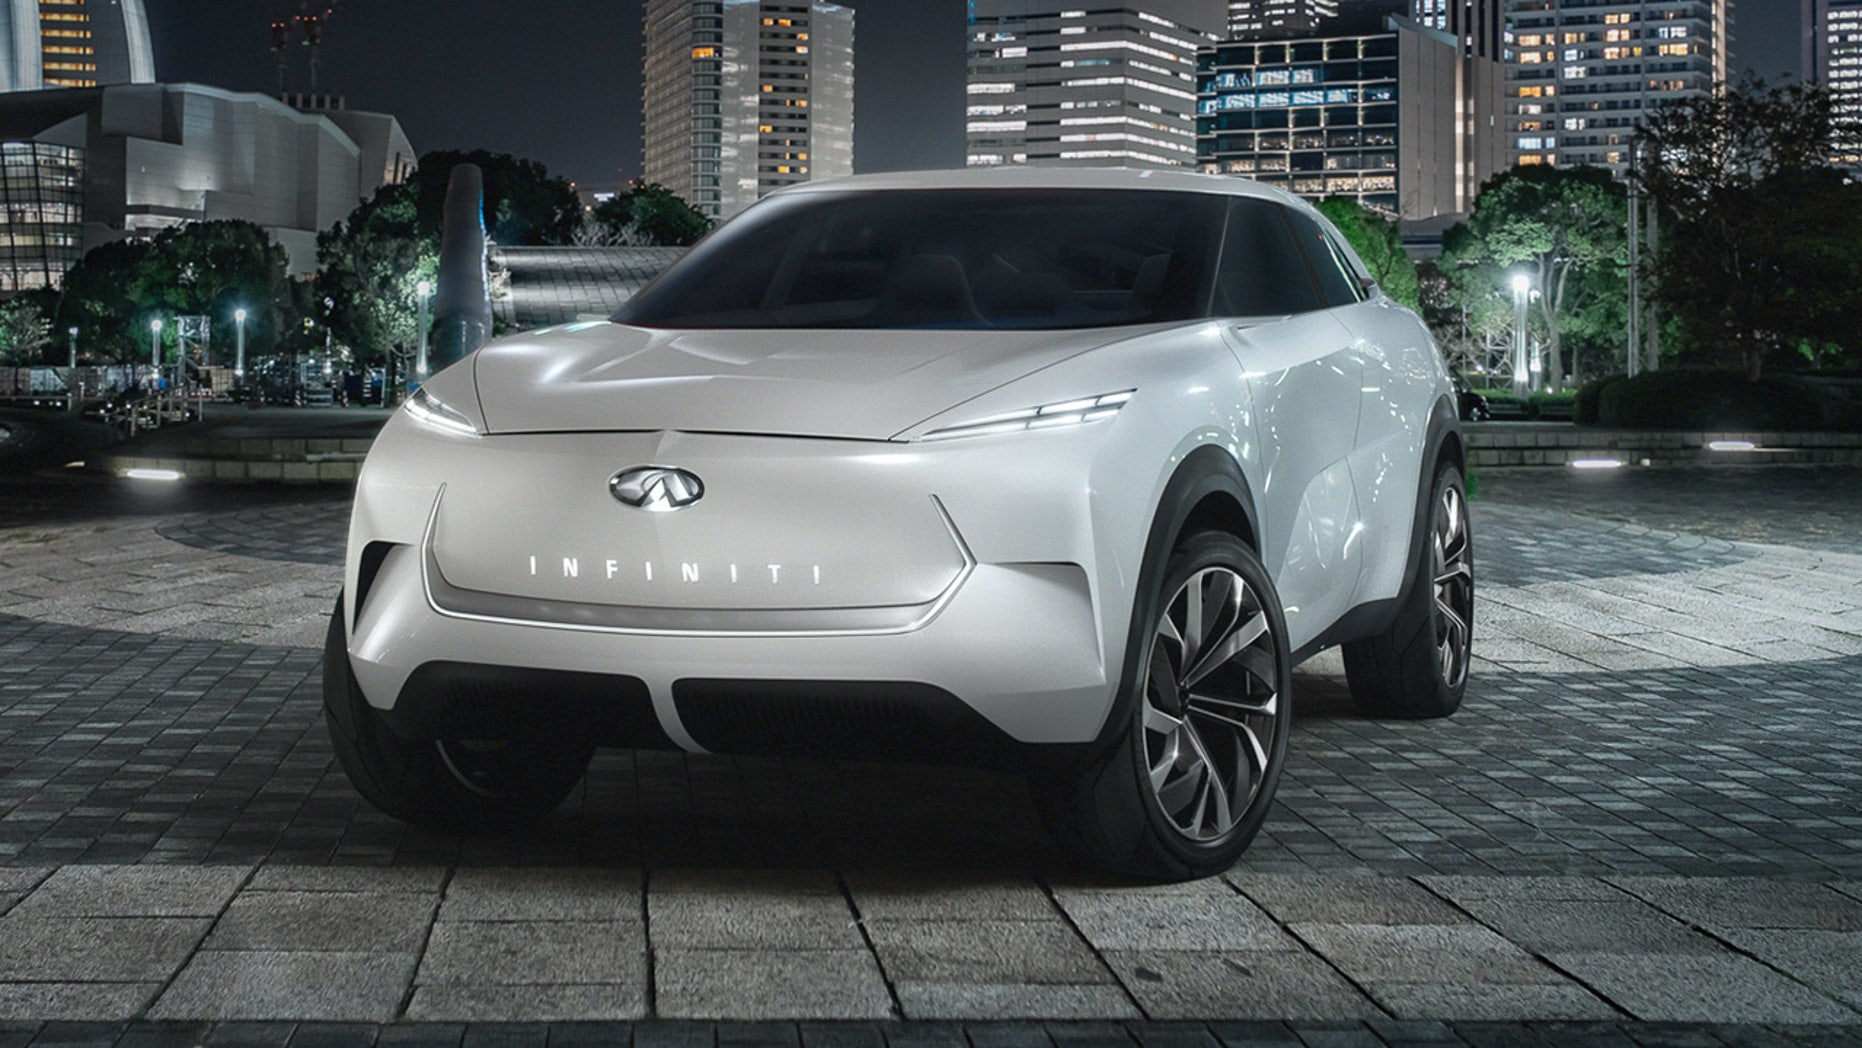 Infiniti reveals electric QX Inspiration concept SUV